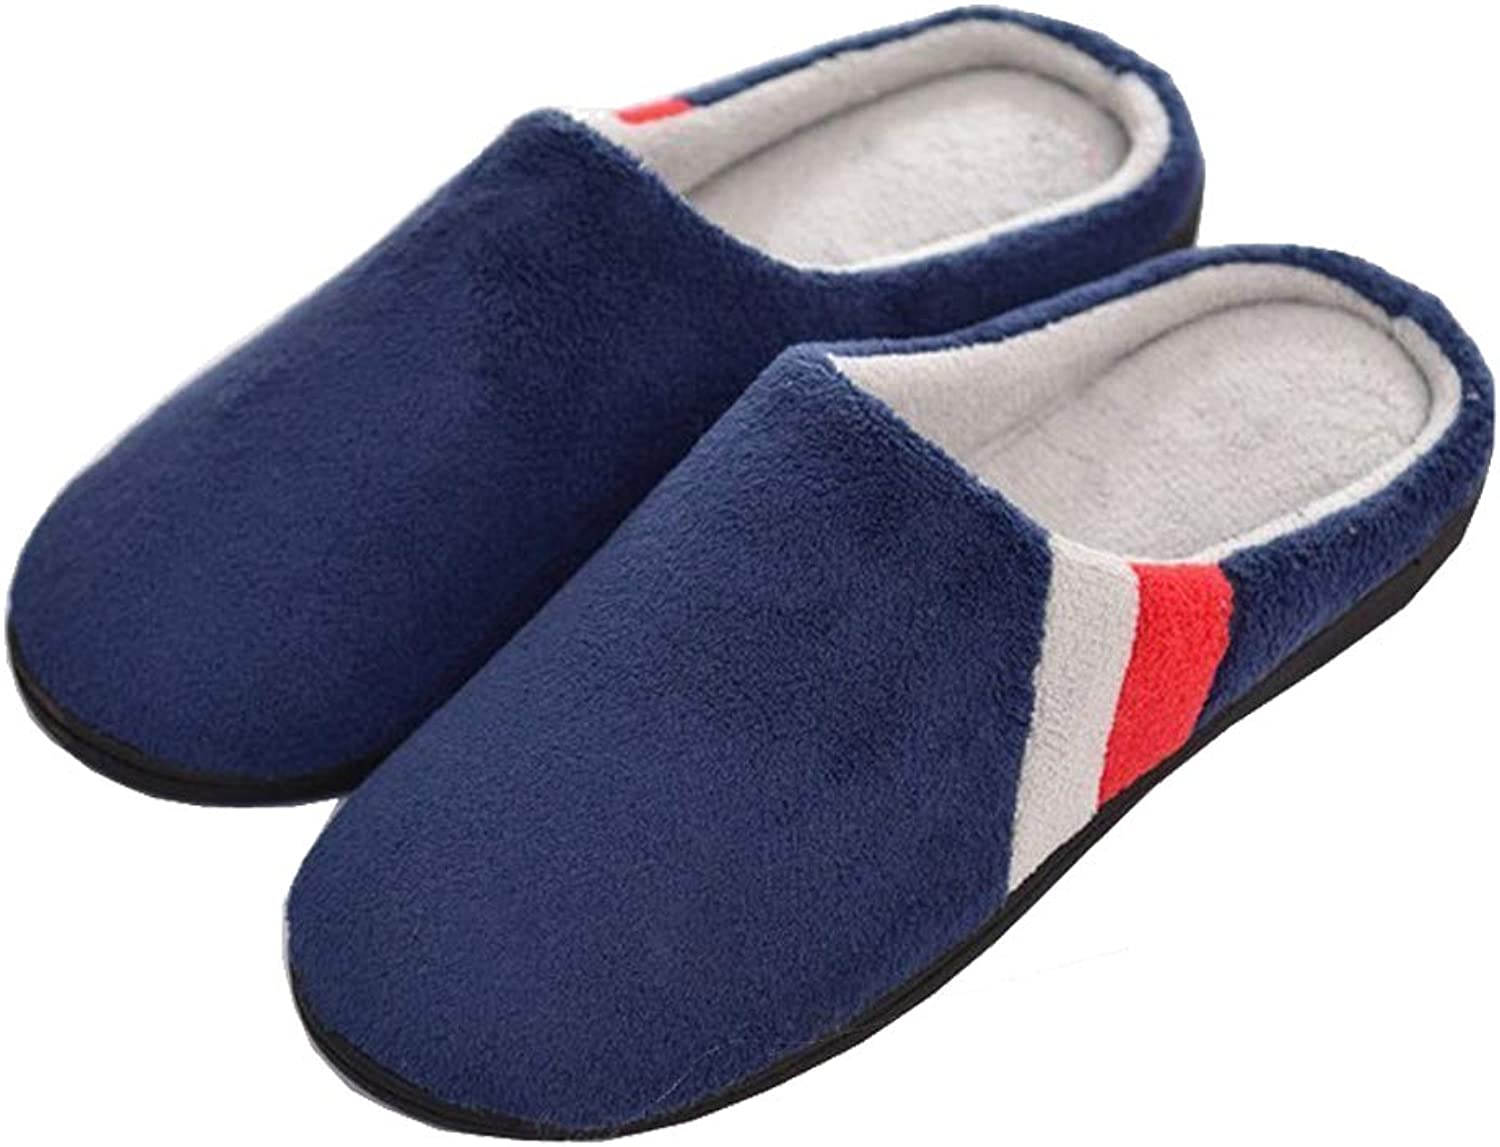 Lijeer Indoor Home Slippers Men Memory Foam Cozy House shoes Slides House Non-Slip Warm Flip Flops Women